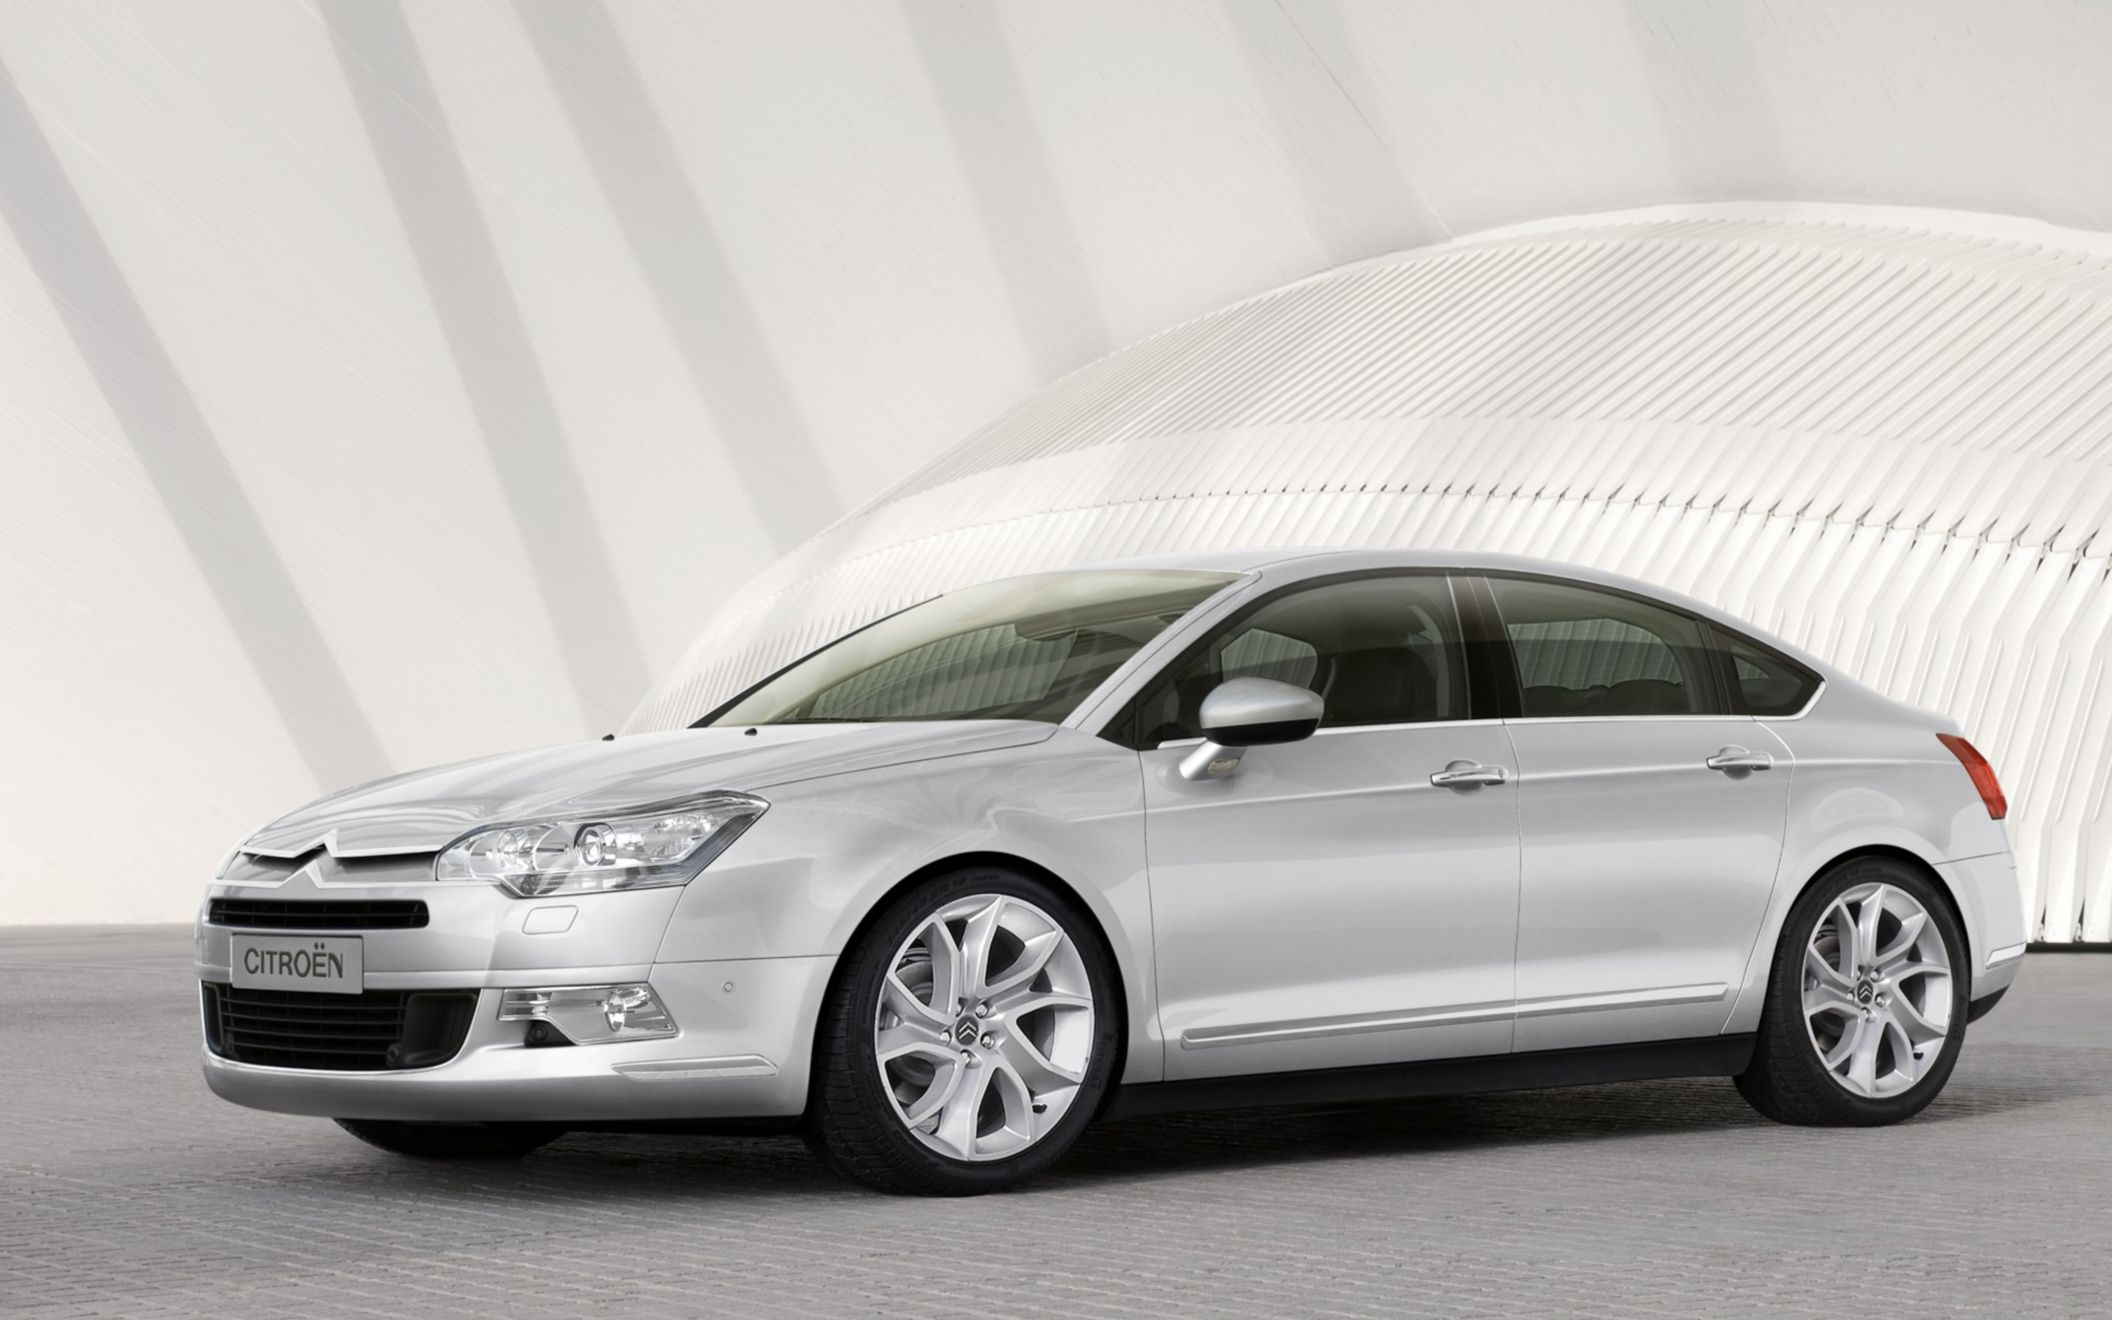 Download free HD Citroen C5 Wide Wallpaper, image